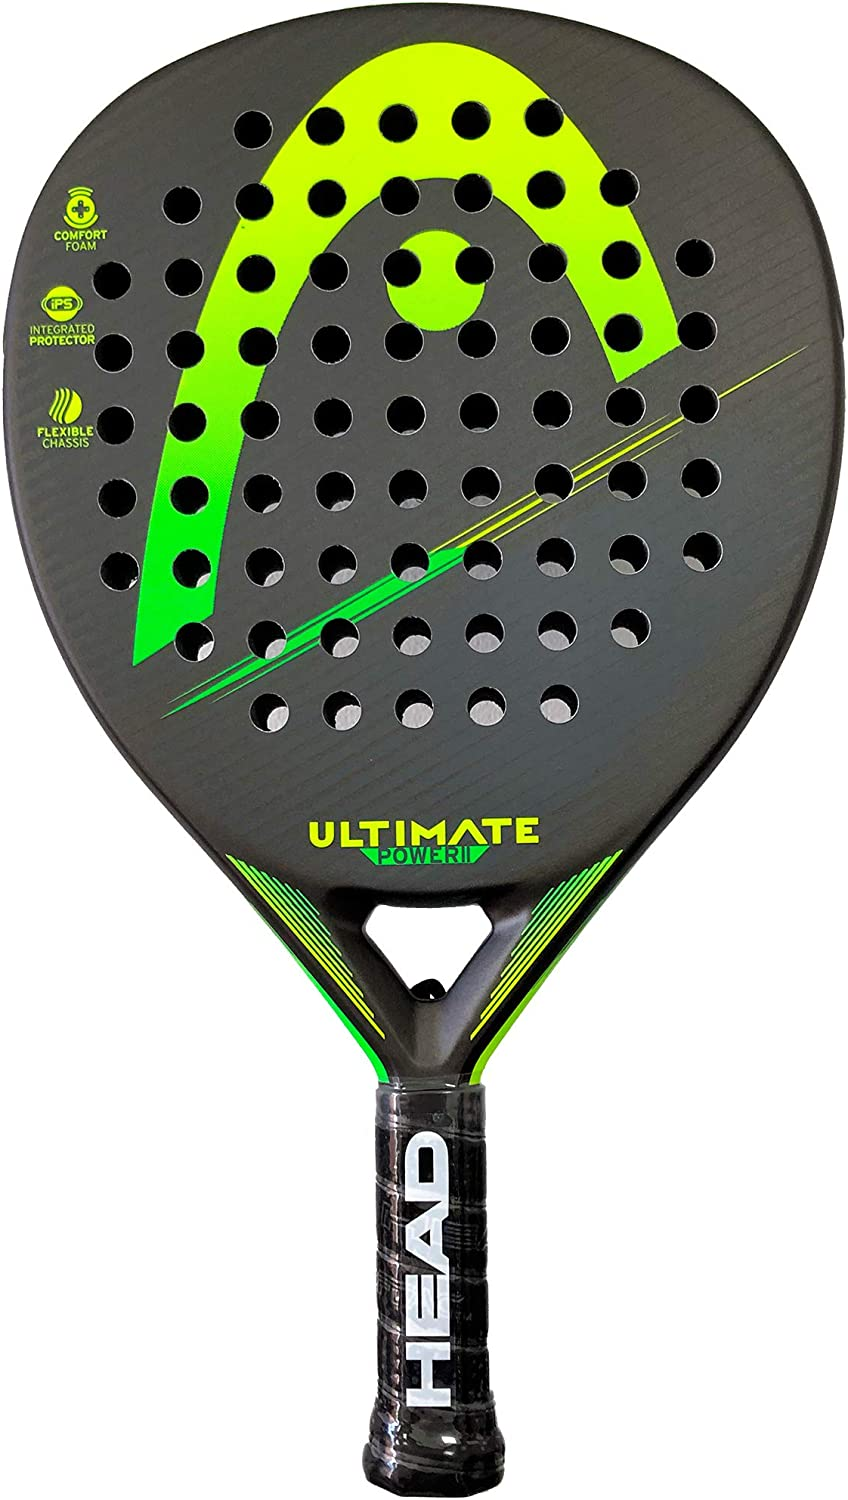 Head Pala Padel Ultimate Power 2 Green/Yellow: Amazon.es: Deportes y aire libre